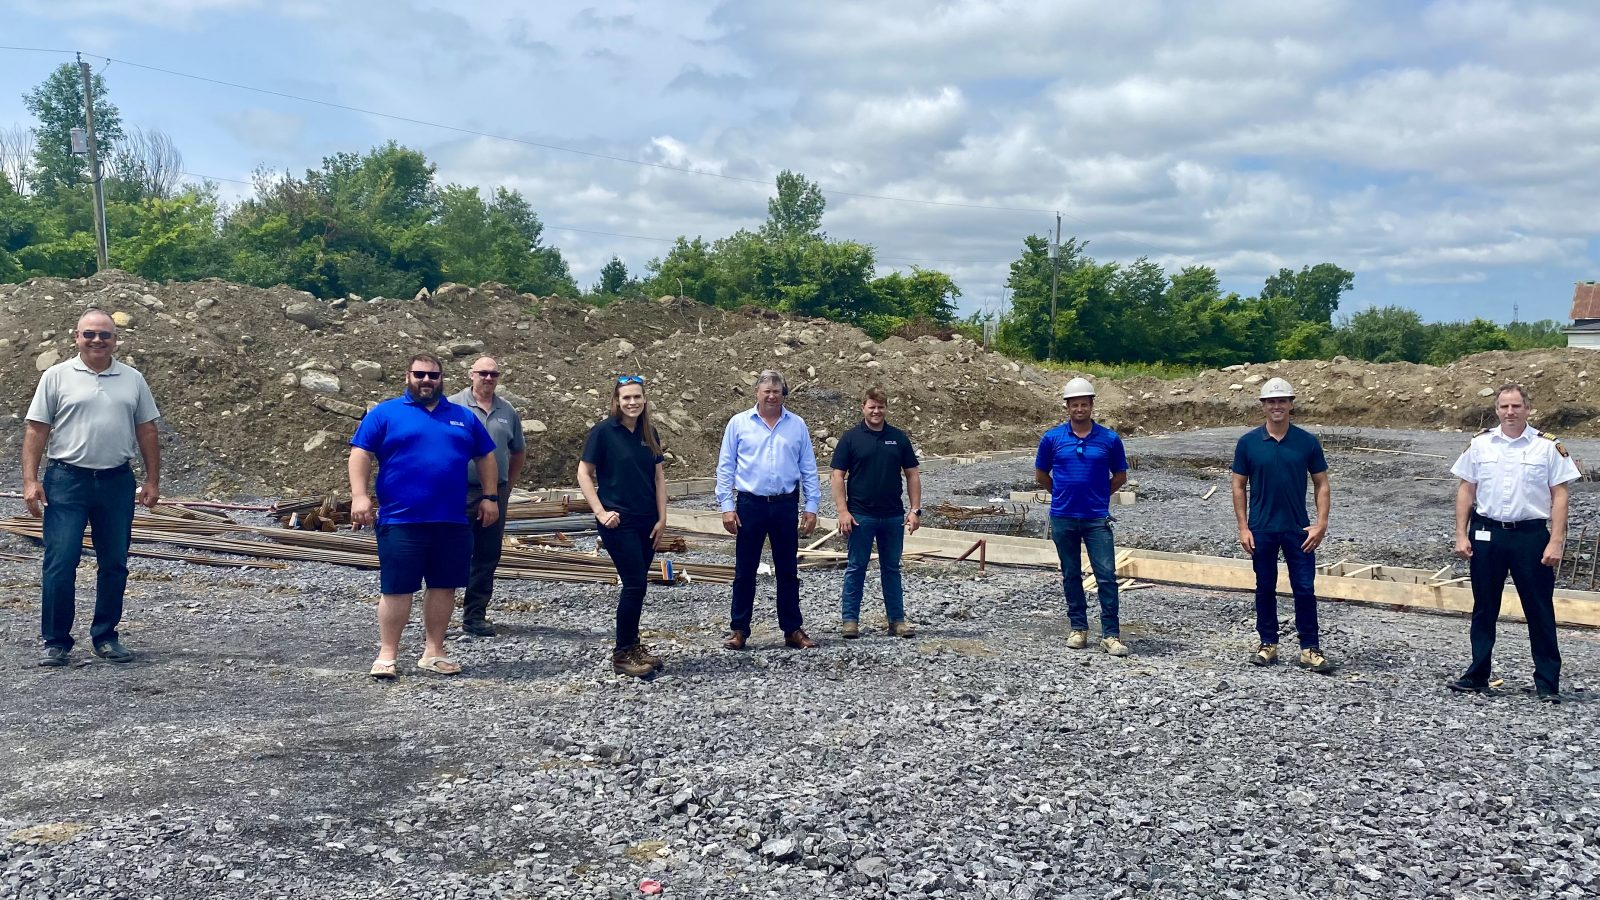 South Glengarry begins work on new Public Works facility